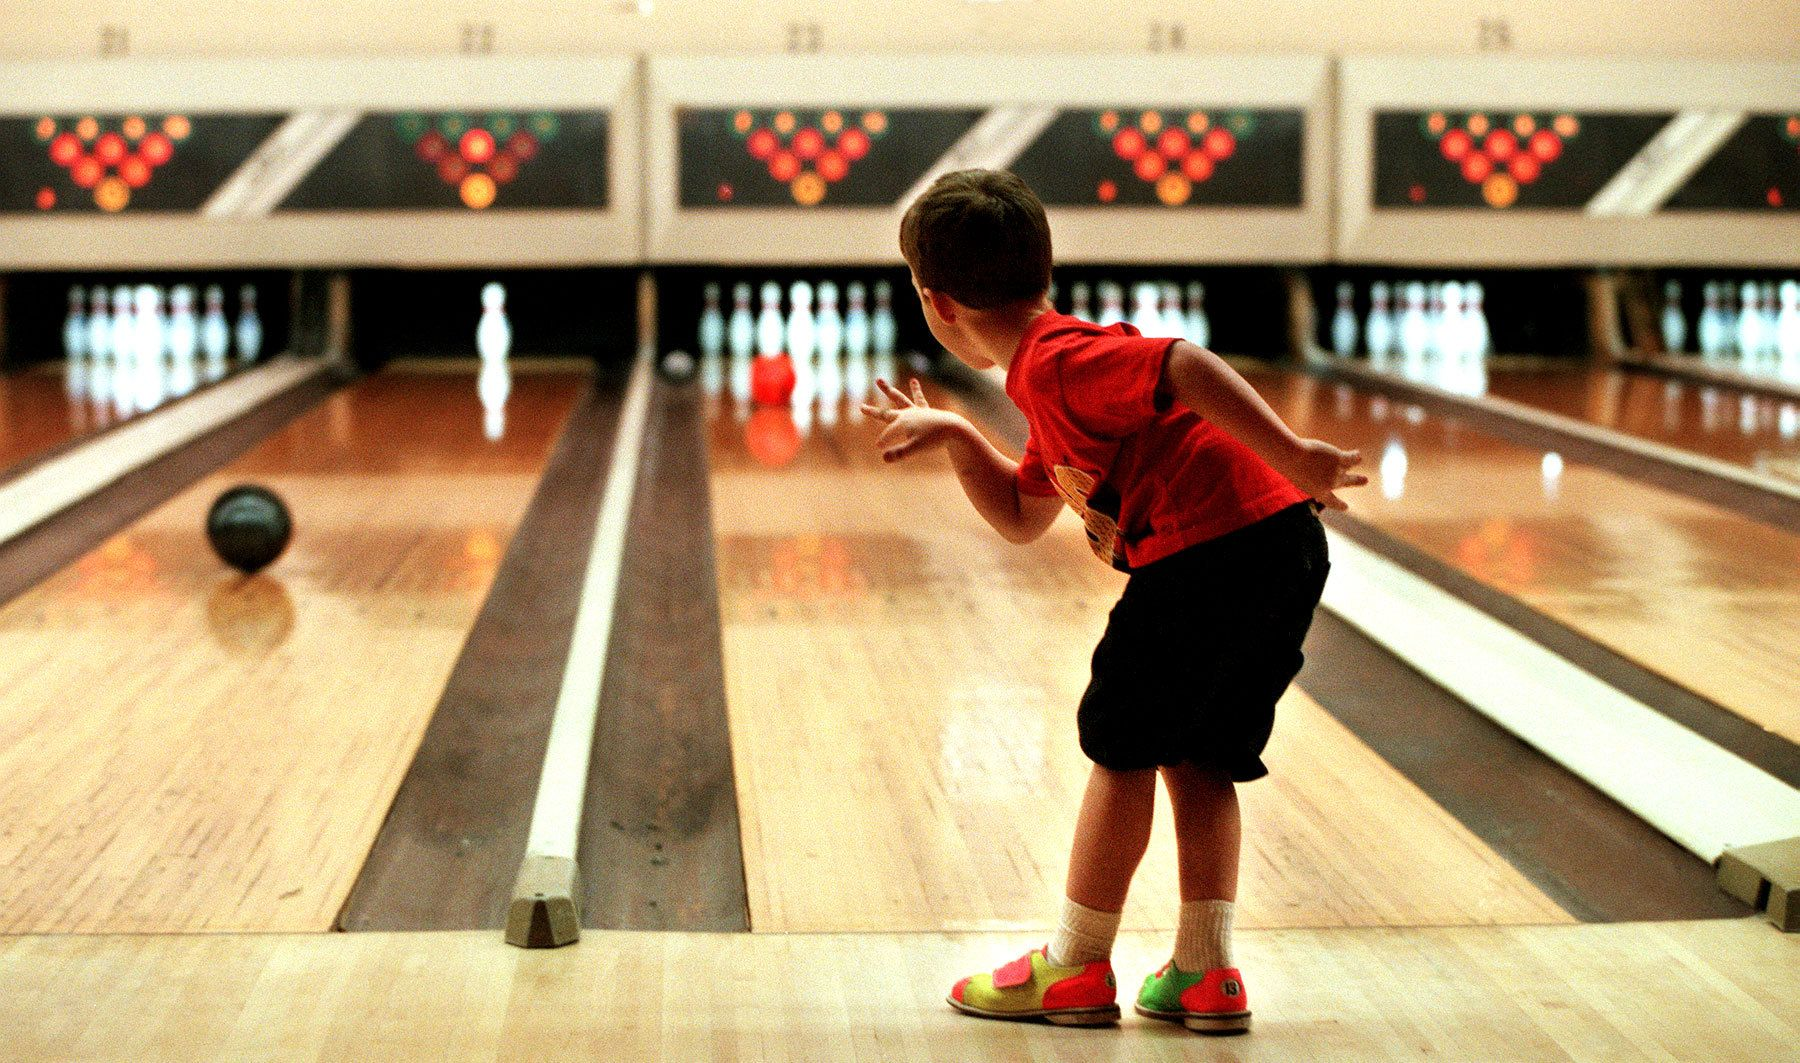 James Pearce, 5 years-old of Conway, bowls with a little body english at Waccamaw Lanes in Myrtle Beach. He is a member of the {quote}Slam Jam{quote} team at the lanes.